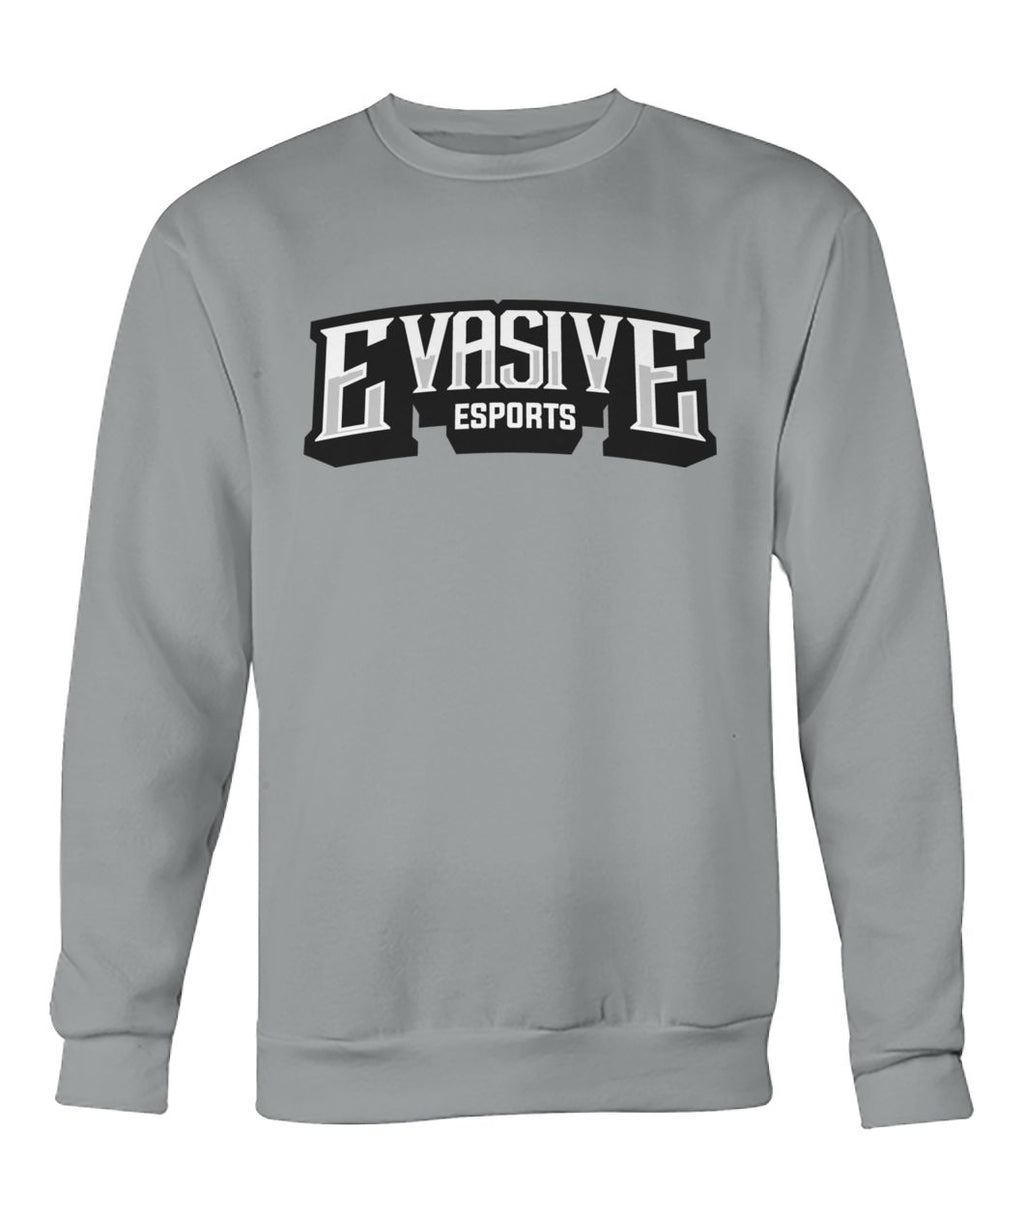 Evasive Esports Text Logo Crew Neck (3 Color Options)